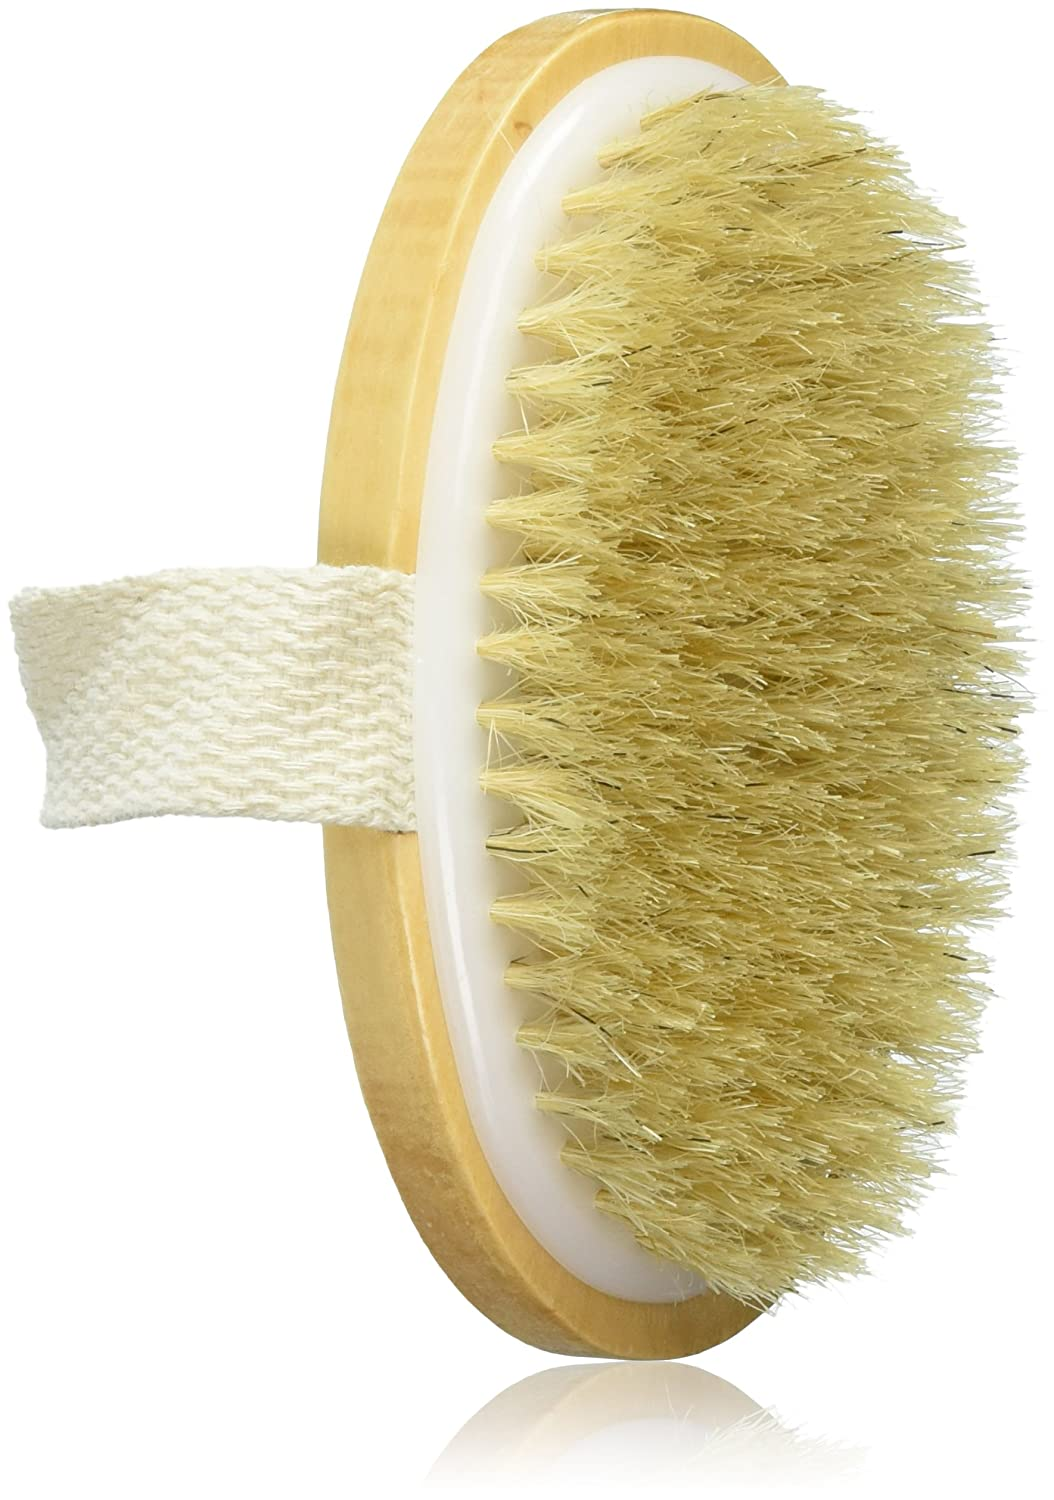 FantaSea Natural Bristle Body Brush, Pack of 4 FSC634